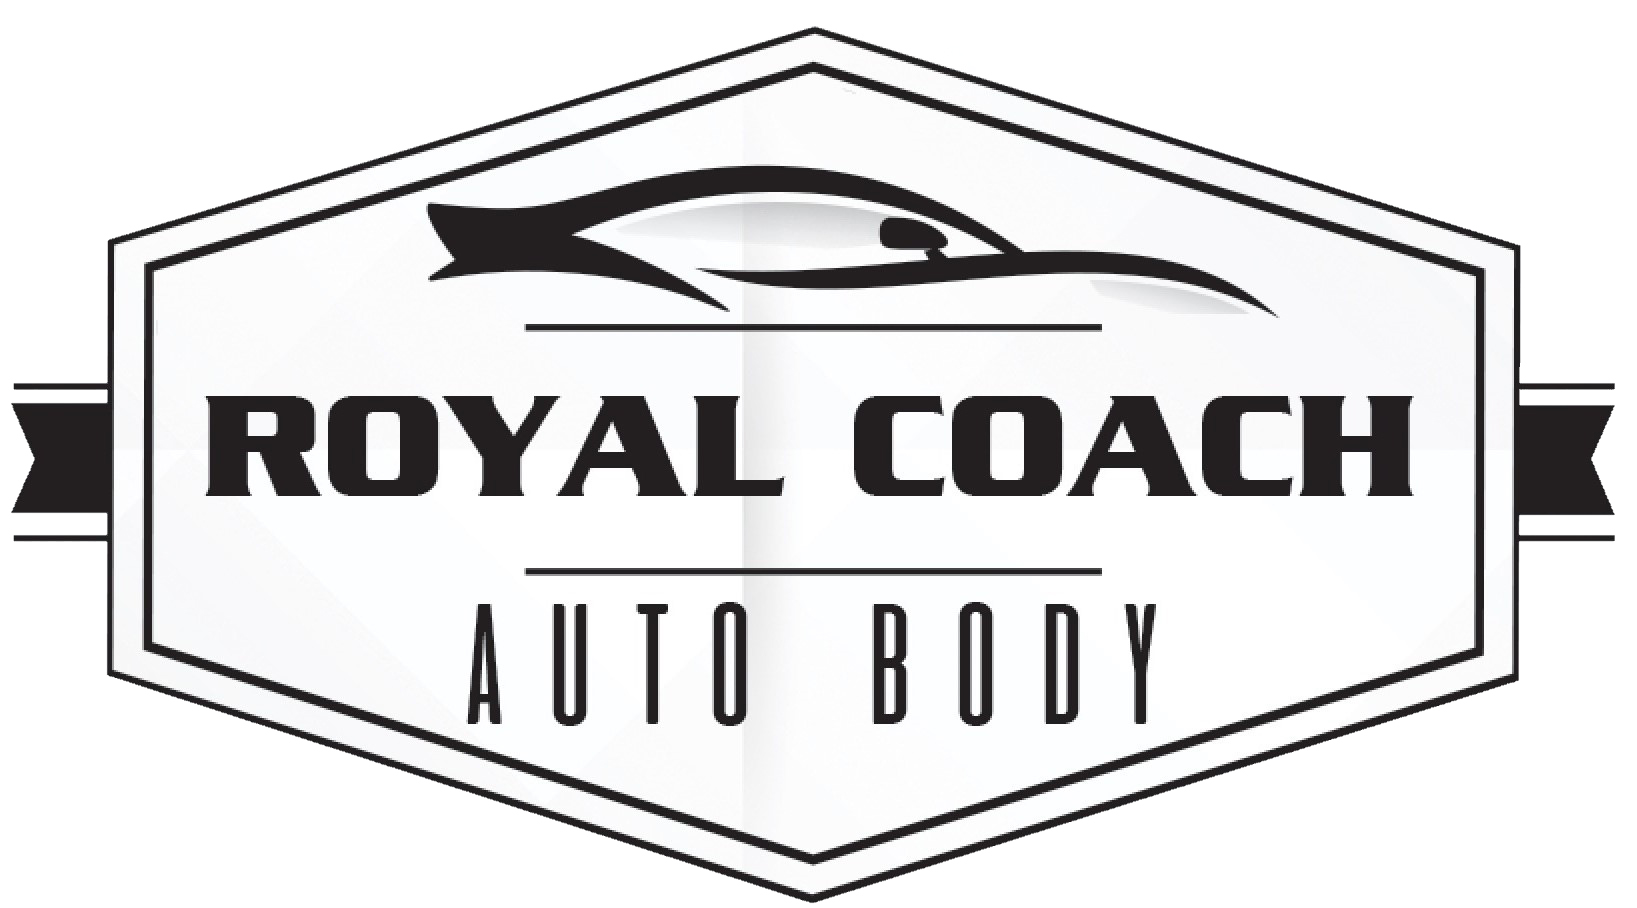 Royal Coach Auto Body Logo